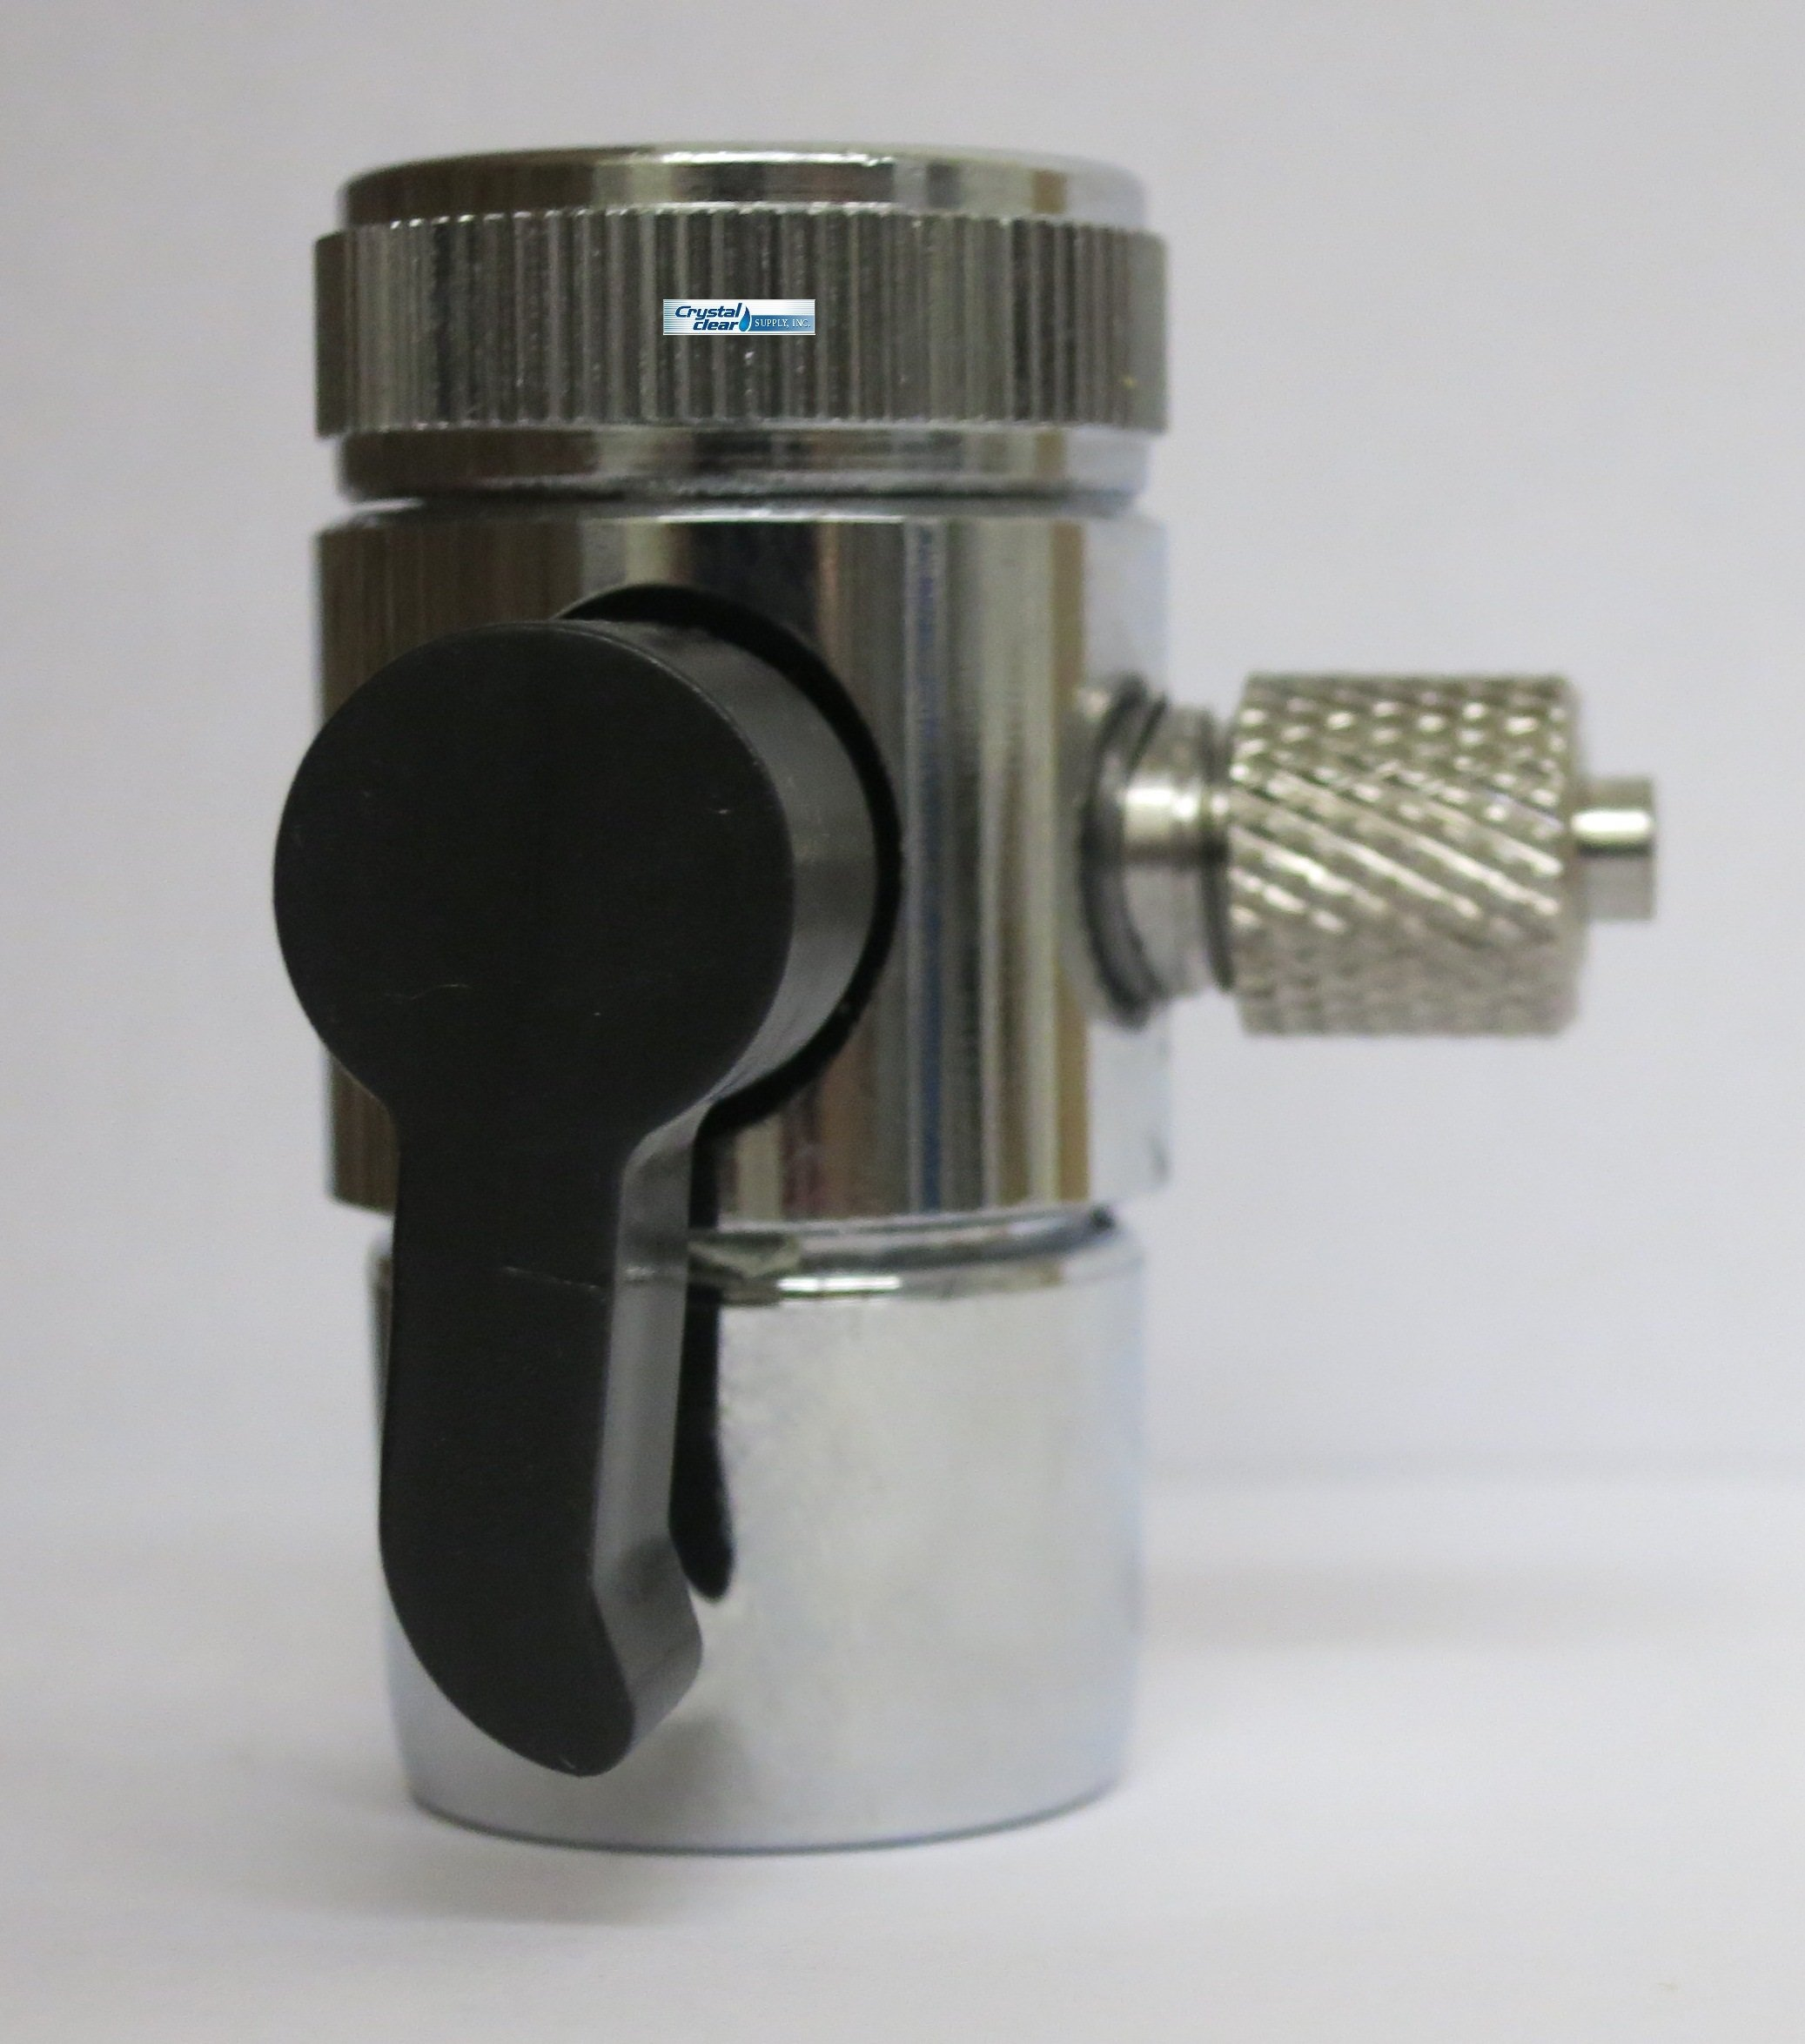 Crystal Clear Countertop Diverter Valve